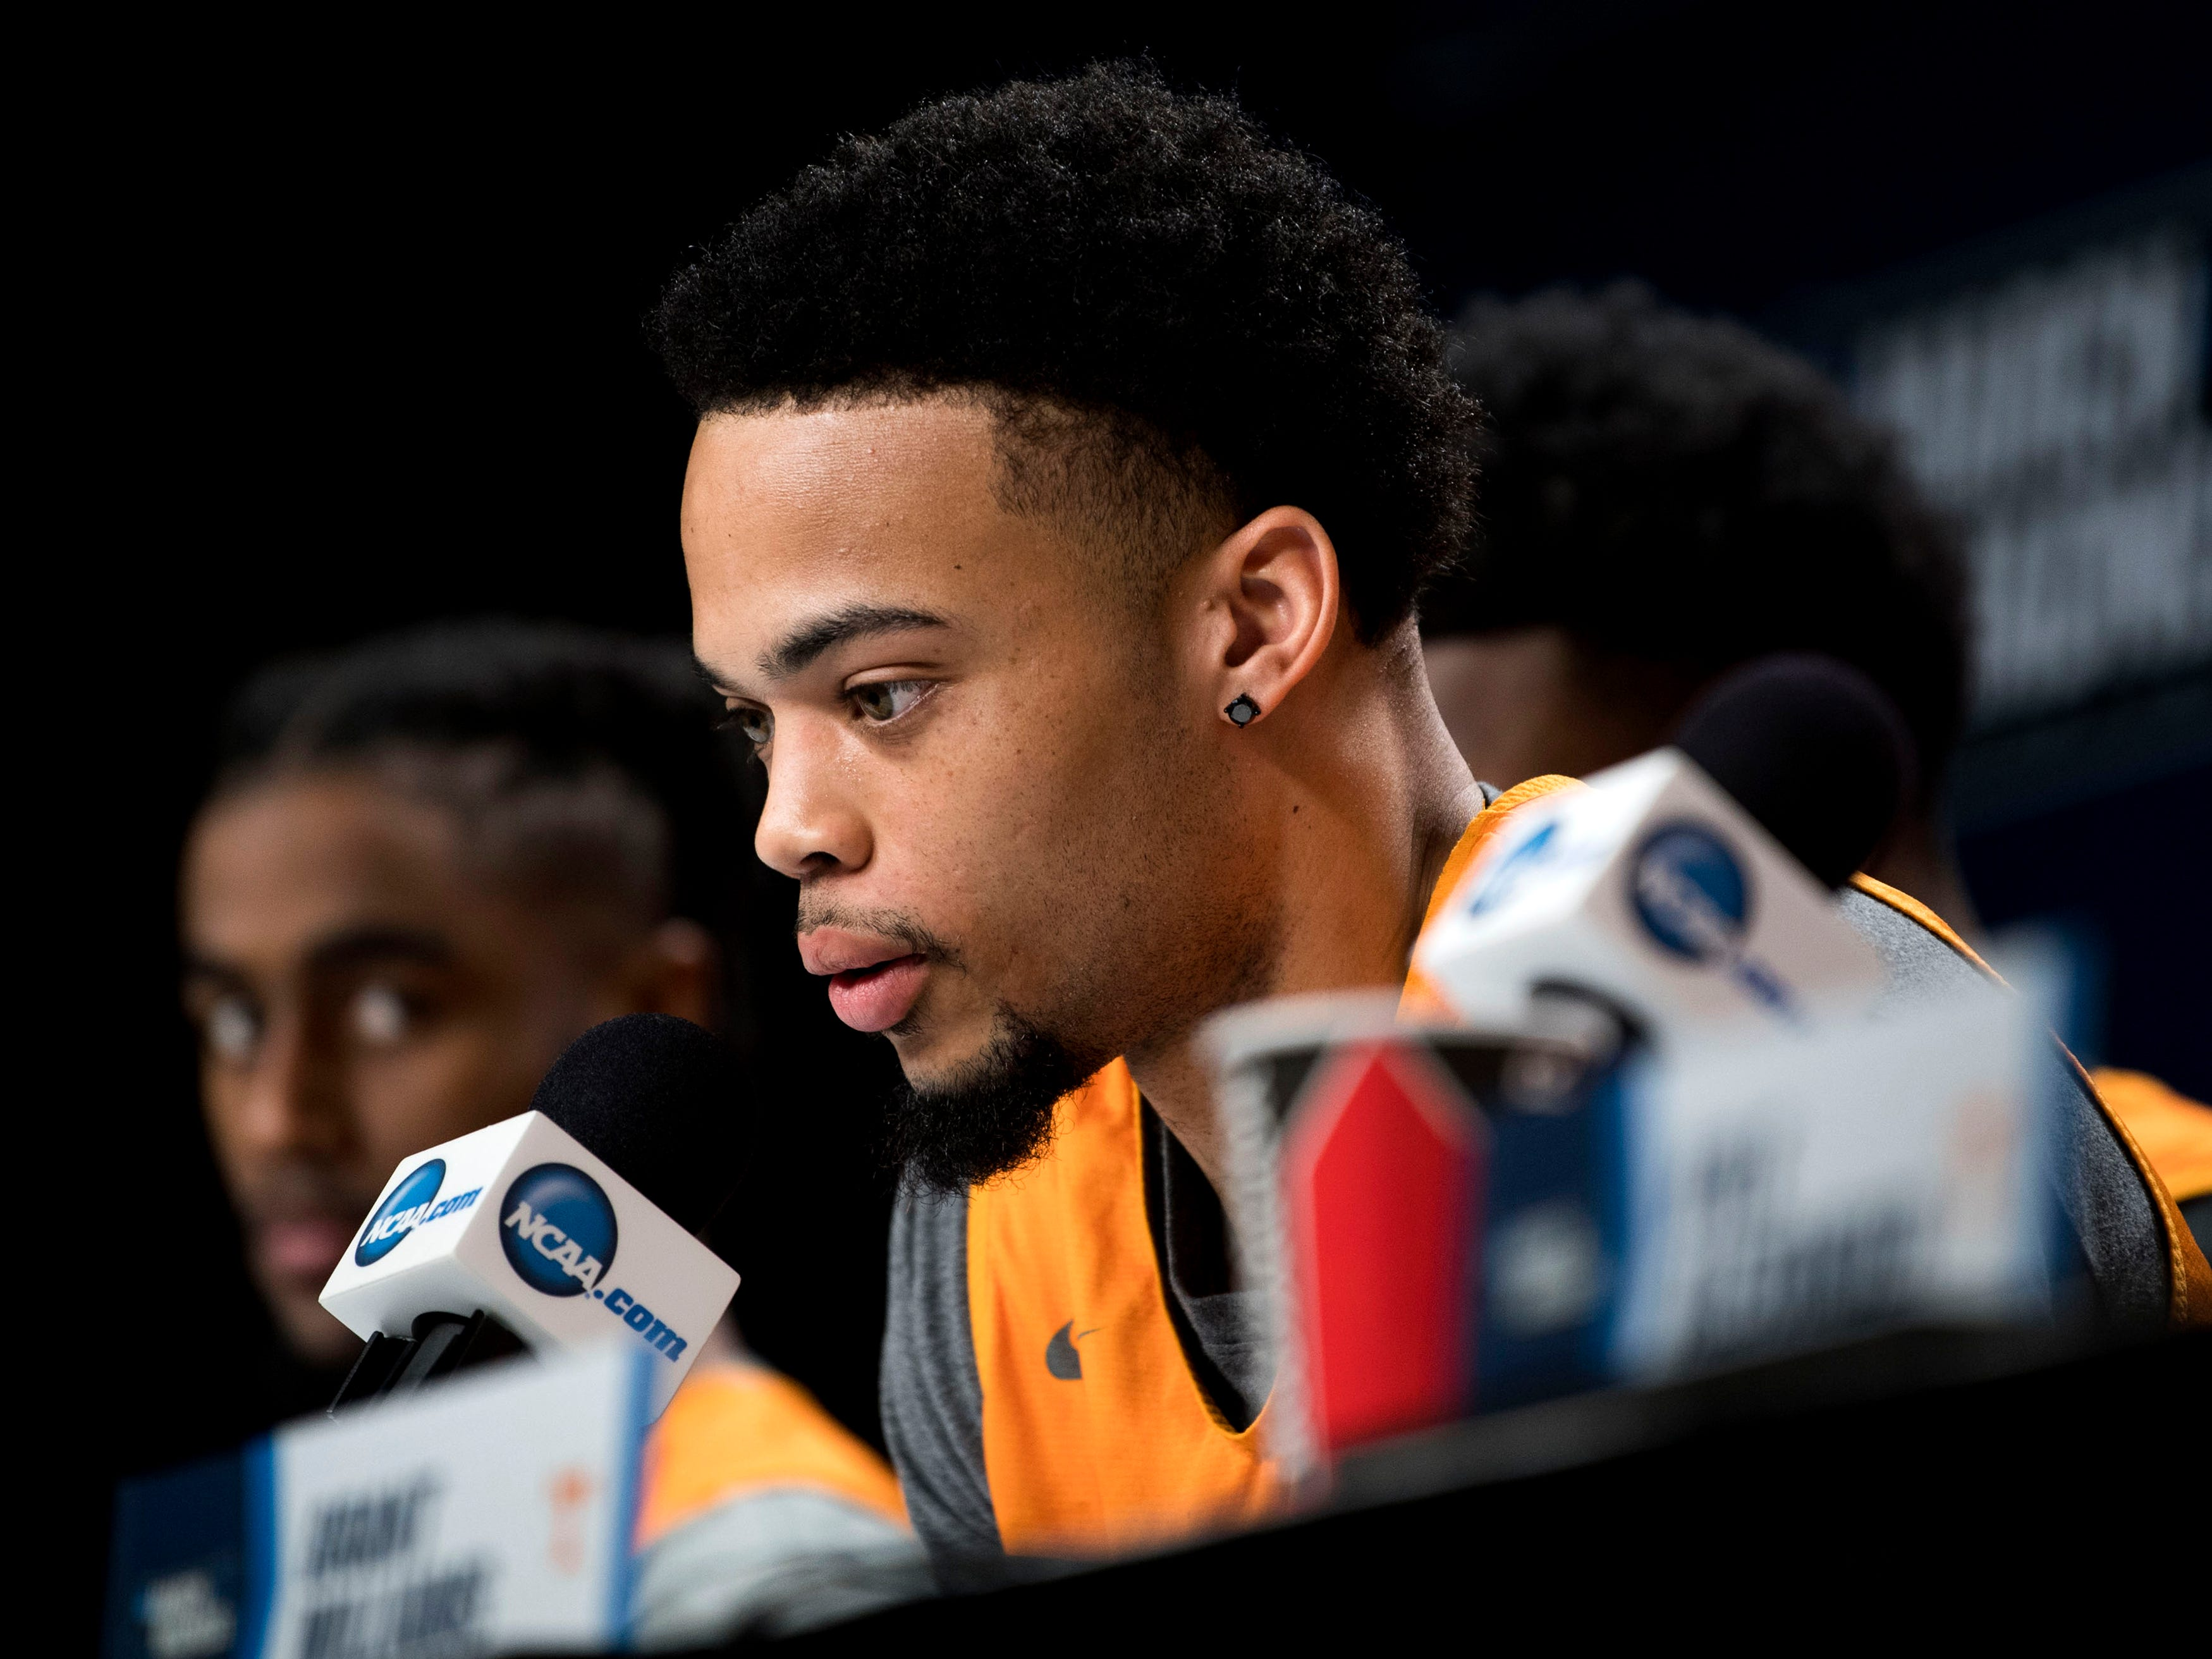 Tennessee guard Lamonte Turner (1) speaks at a press conference on Saturday, March 23, 2019, before the Tennessee Volunteers and Iowa Hawkeyes compete against one another in the second round of the NCAA Tournament held at Nationwide Arena in Columbus, Ohio on Sunday, March 24, 2019.